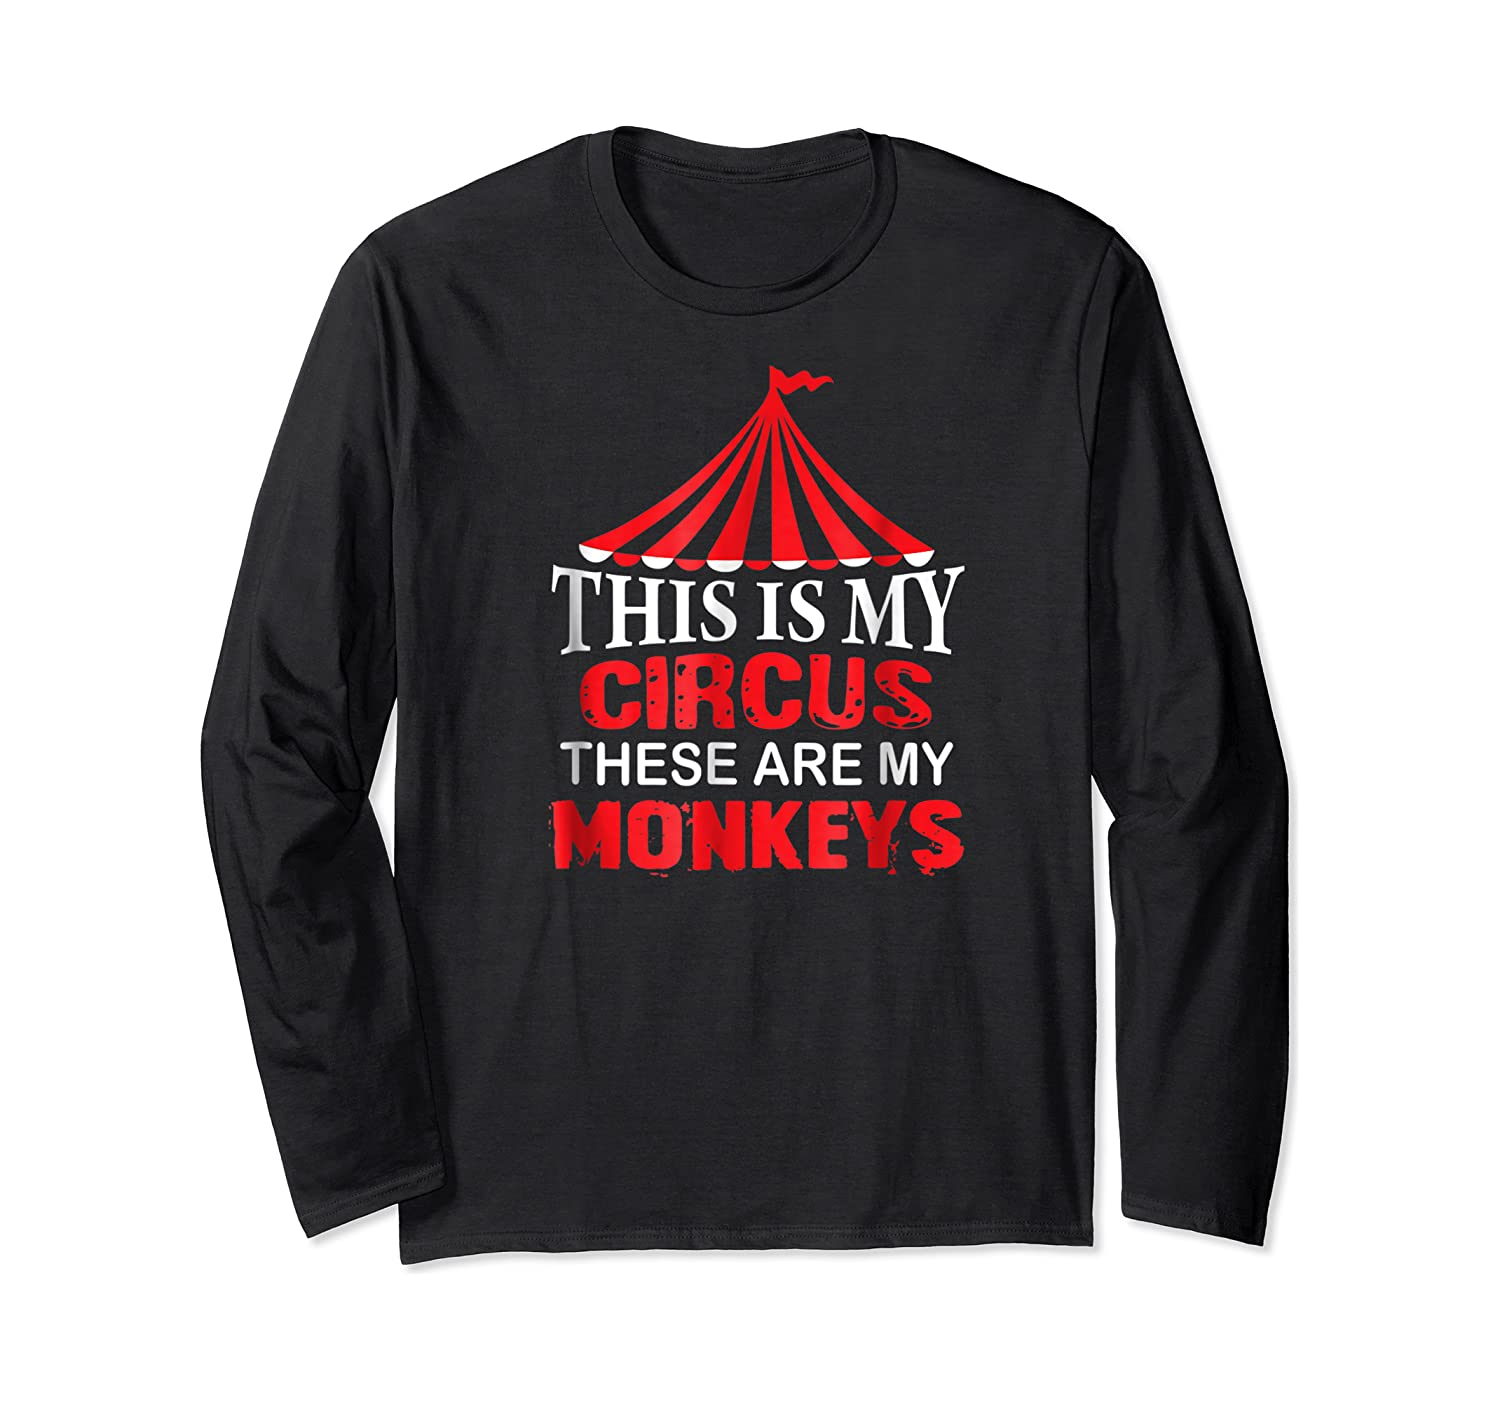 This Is My Circus These Are My Monkeys T Shirt, Family Fun Long Sleeve T-shirt